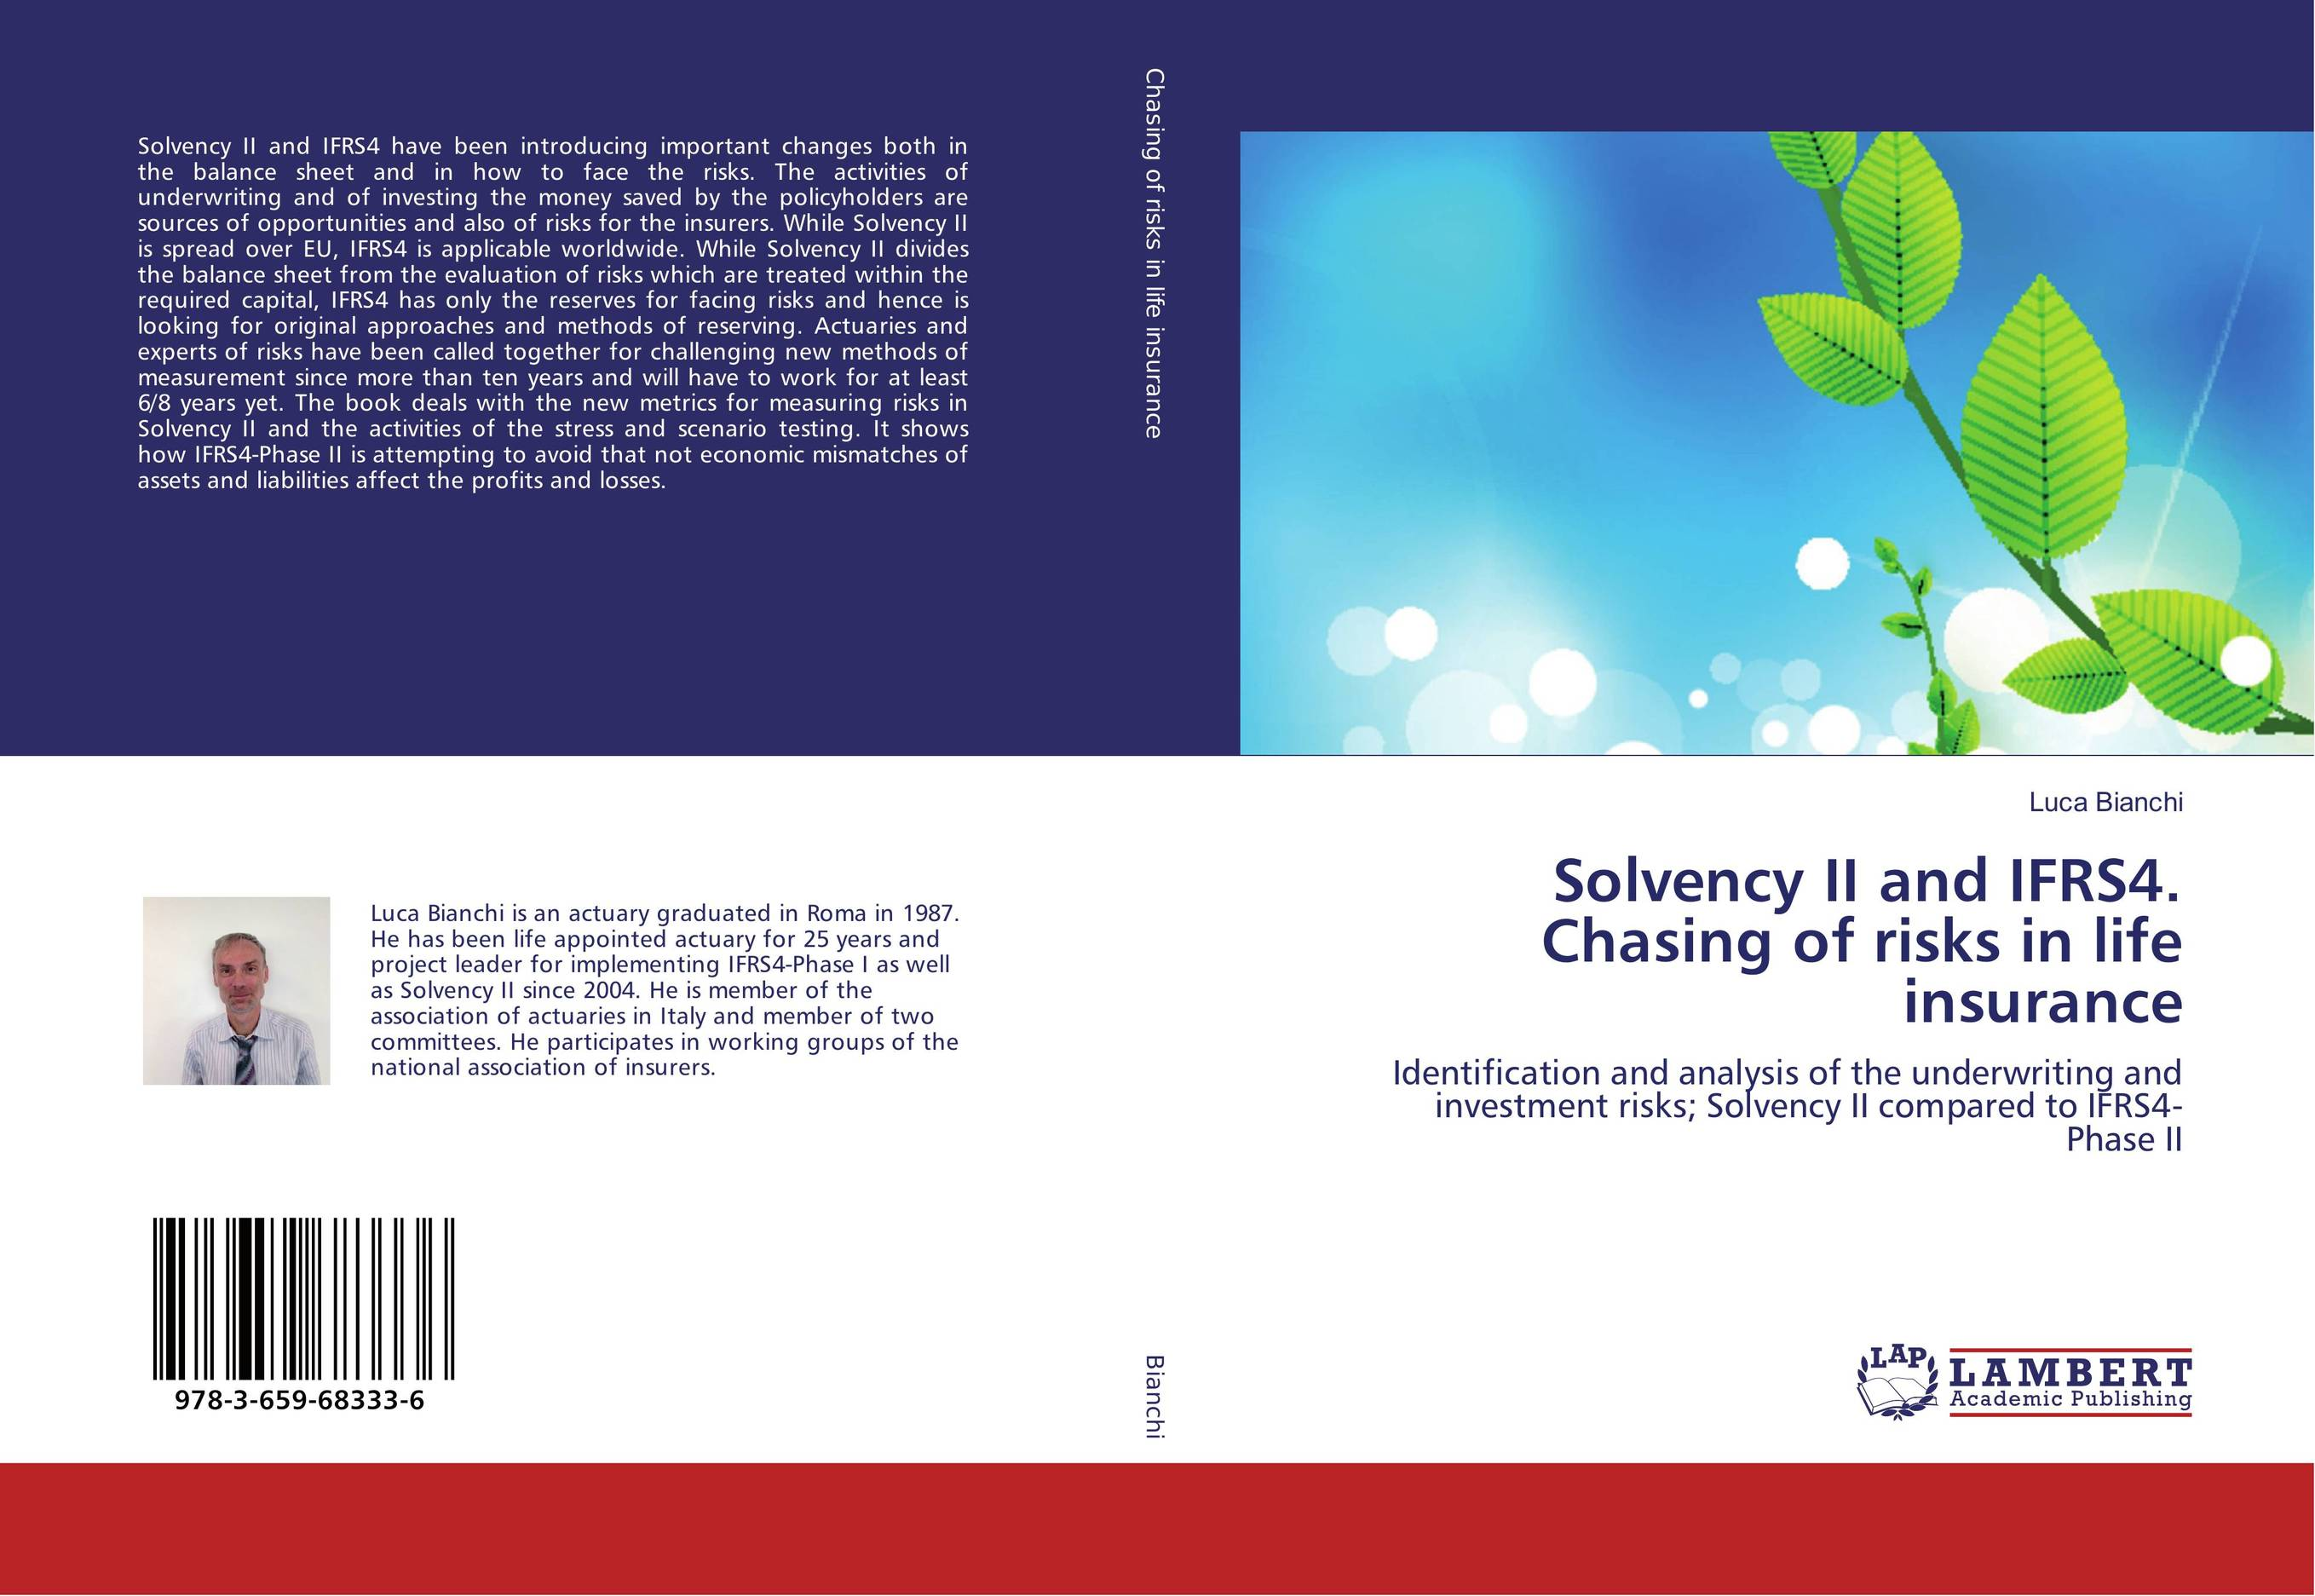 Solvency II and IFRS4. Chasing of risks in life insurance.